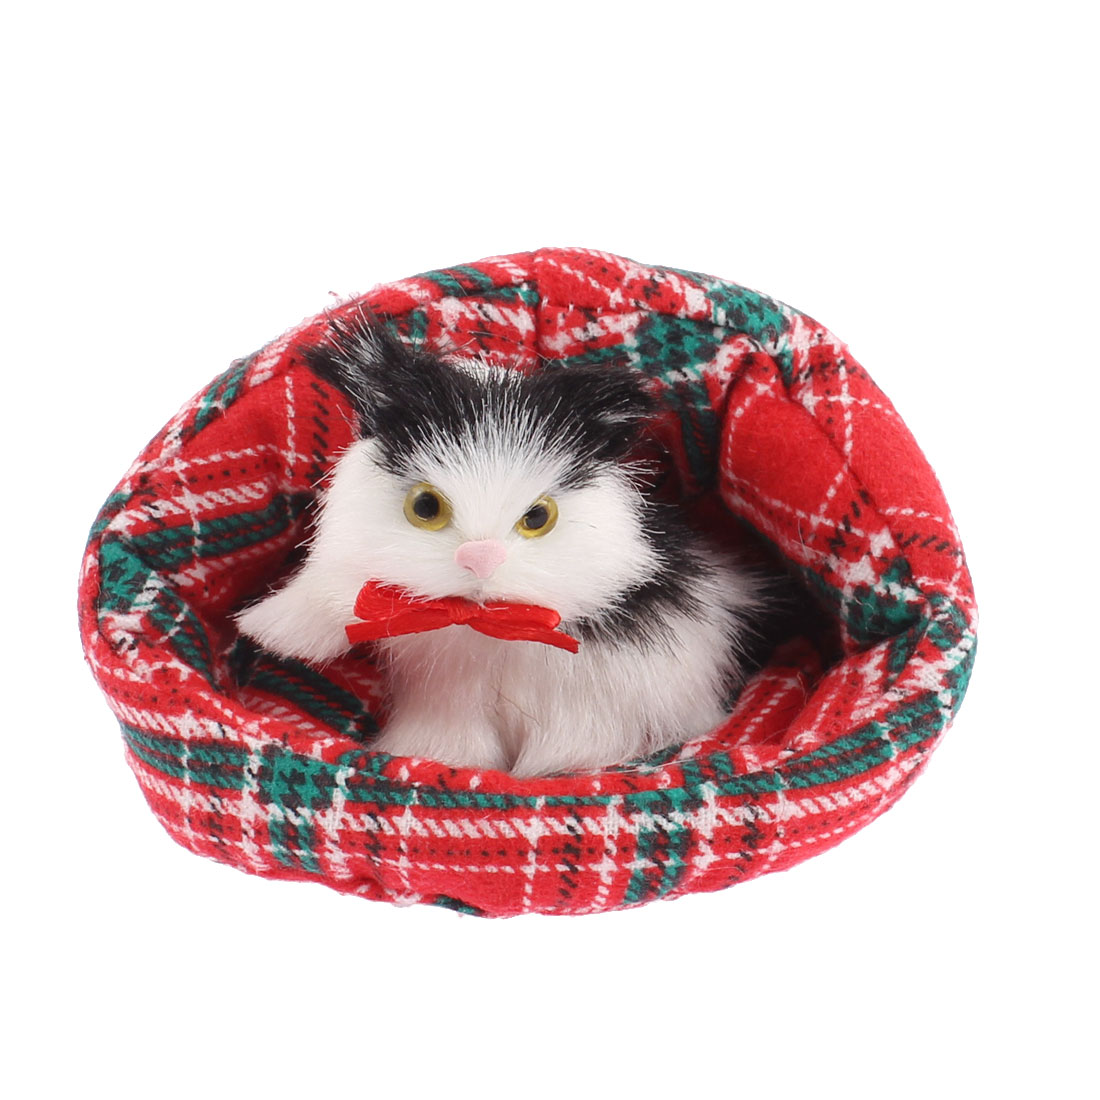 Home Decor Simulation Animal Sound Cat in Bed 10 x 9cm Red